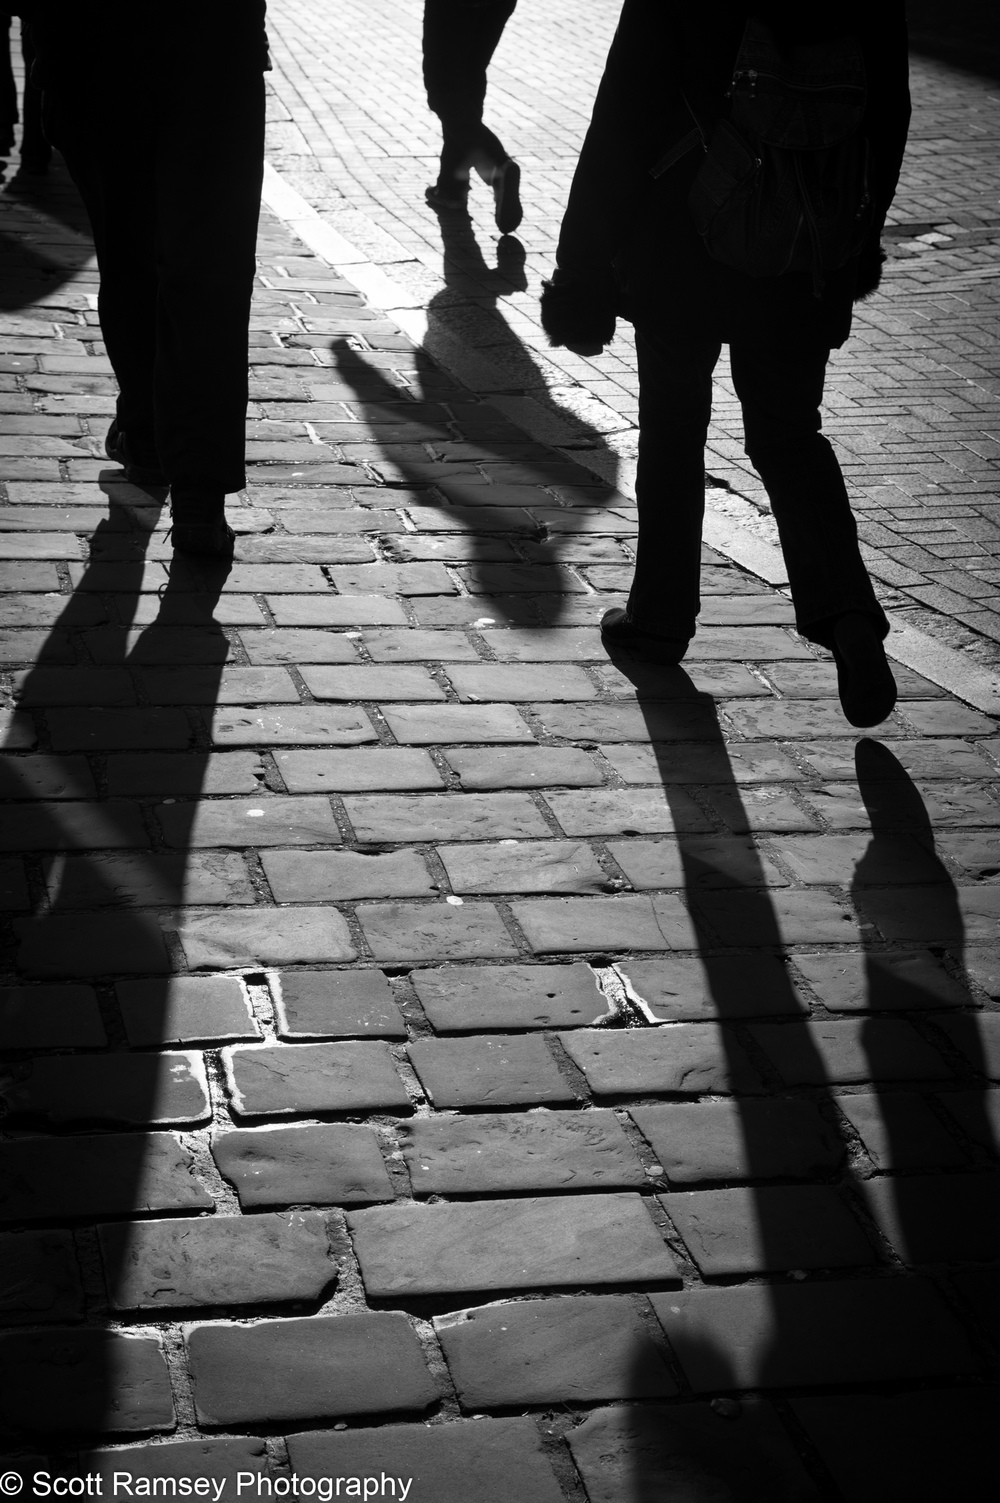 In the winter sun shoppers looking for a Boxing Day sale bargain cast shadows onto the street in Chichester, West Sussex, UK.